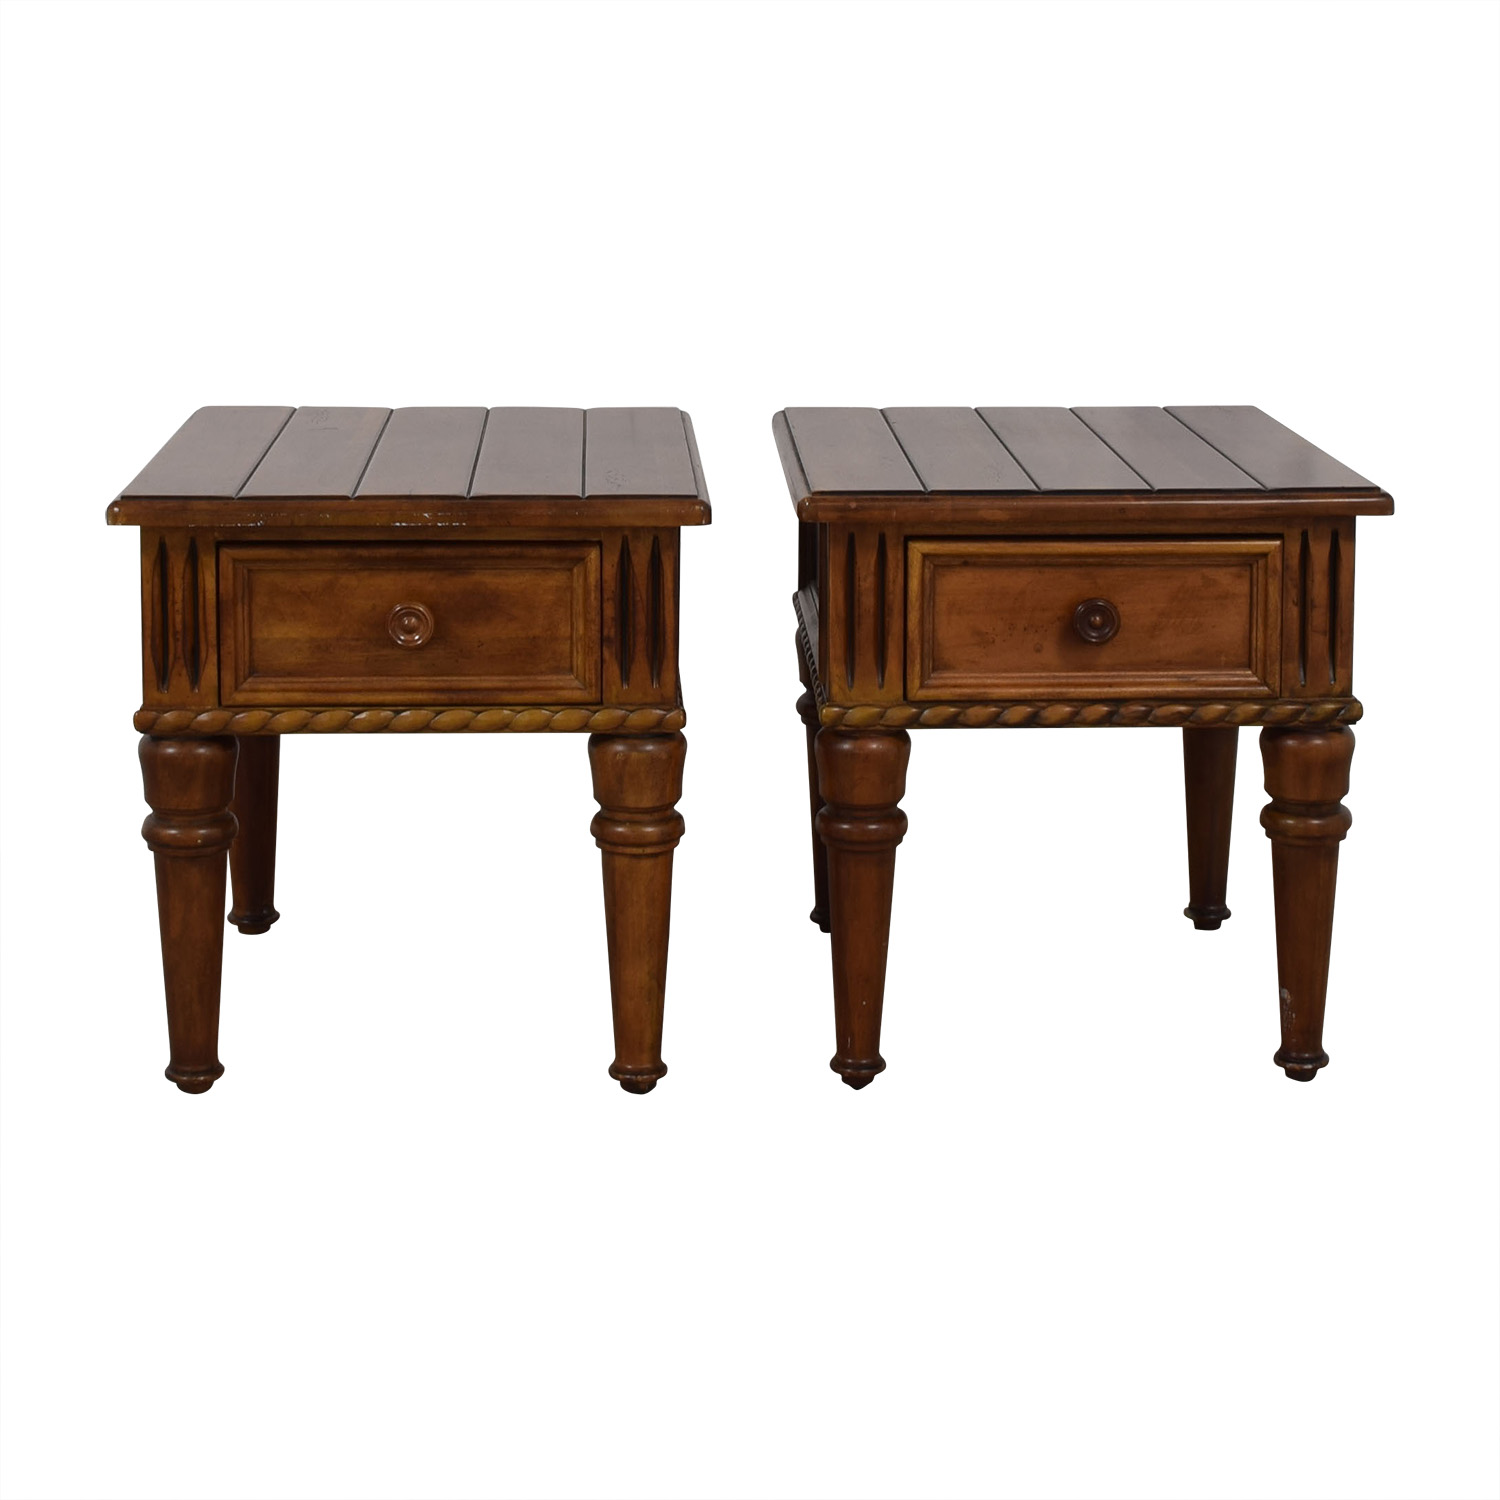 73 Off Thomasville Thomasville Ernest Hemingway Collection Single Drawer Carved Wood End Tables Tables